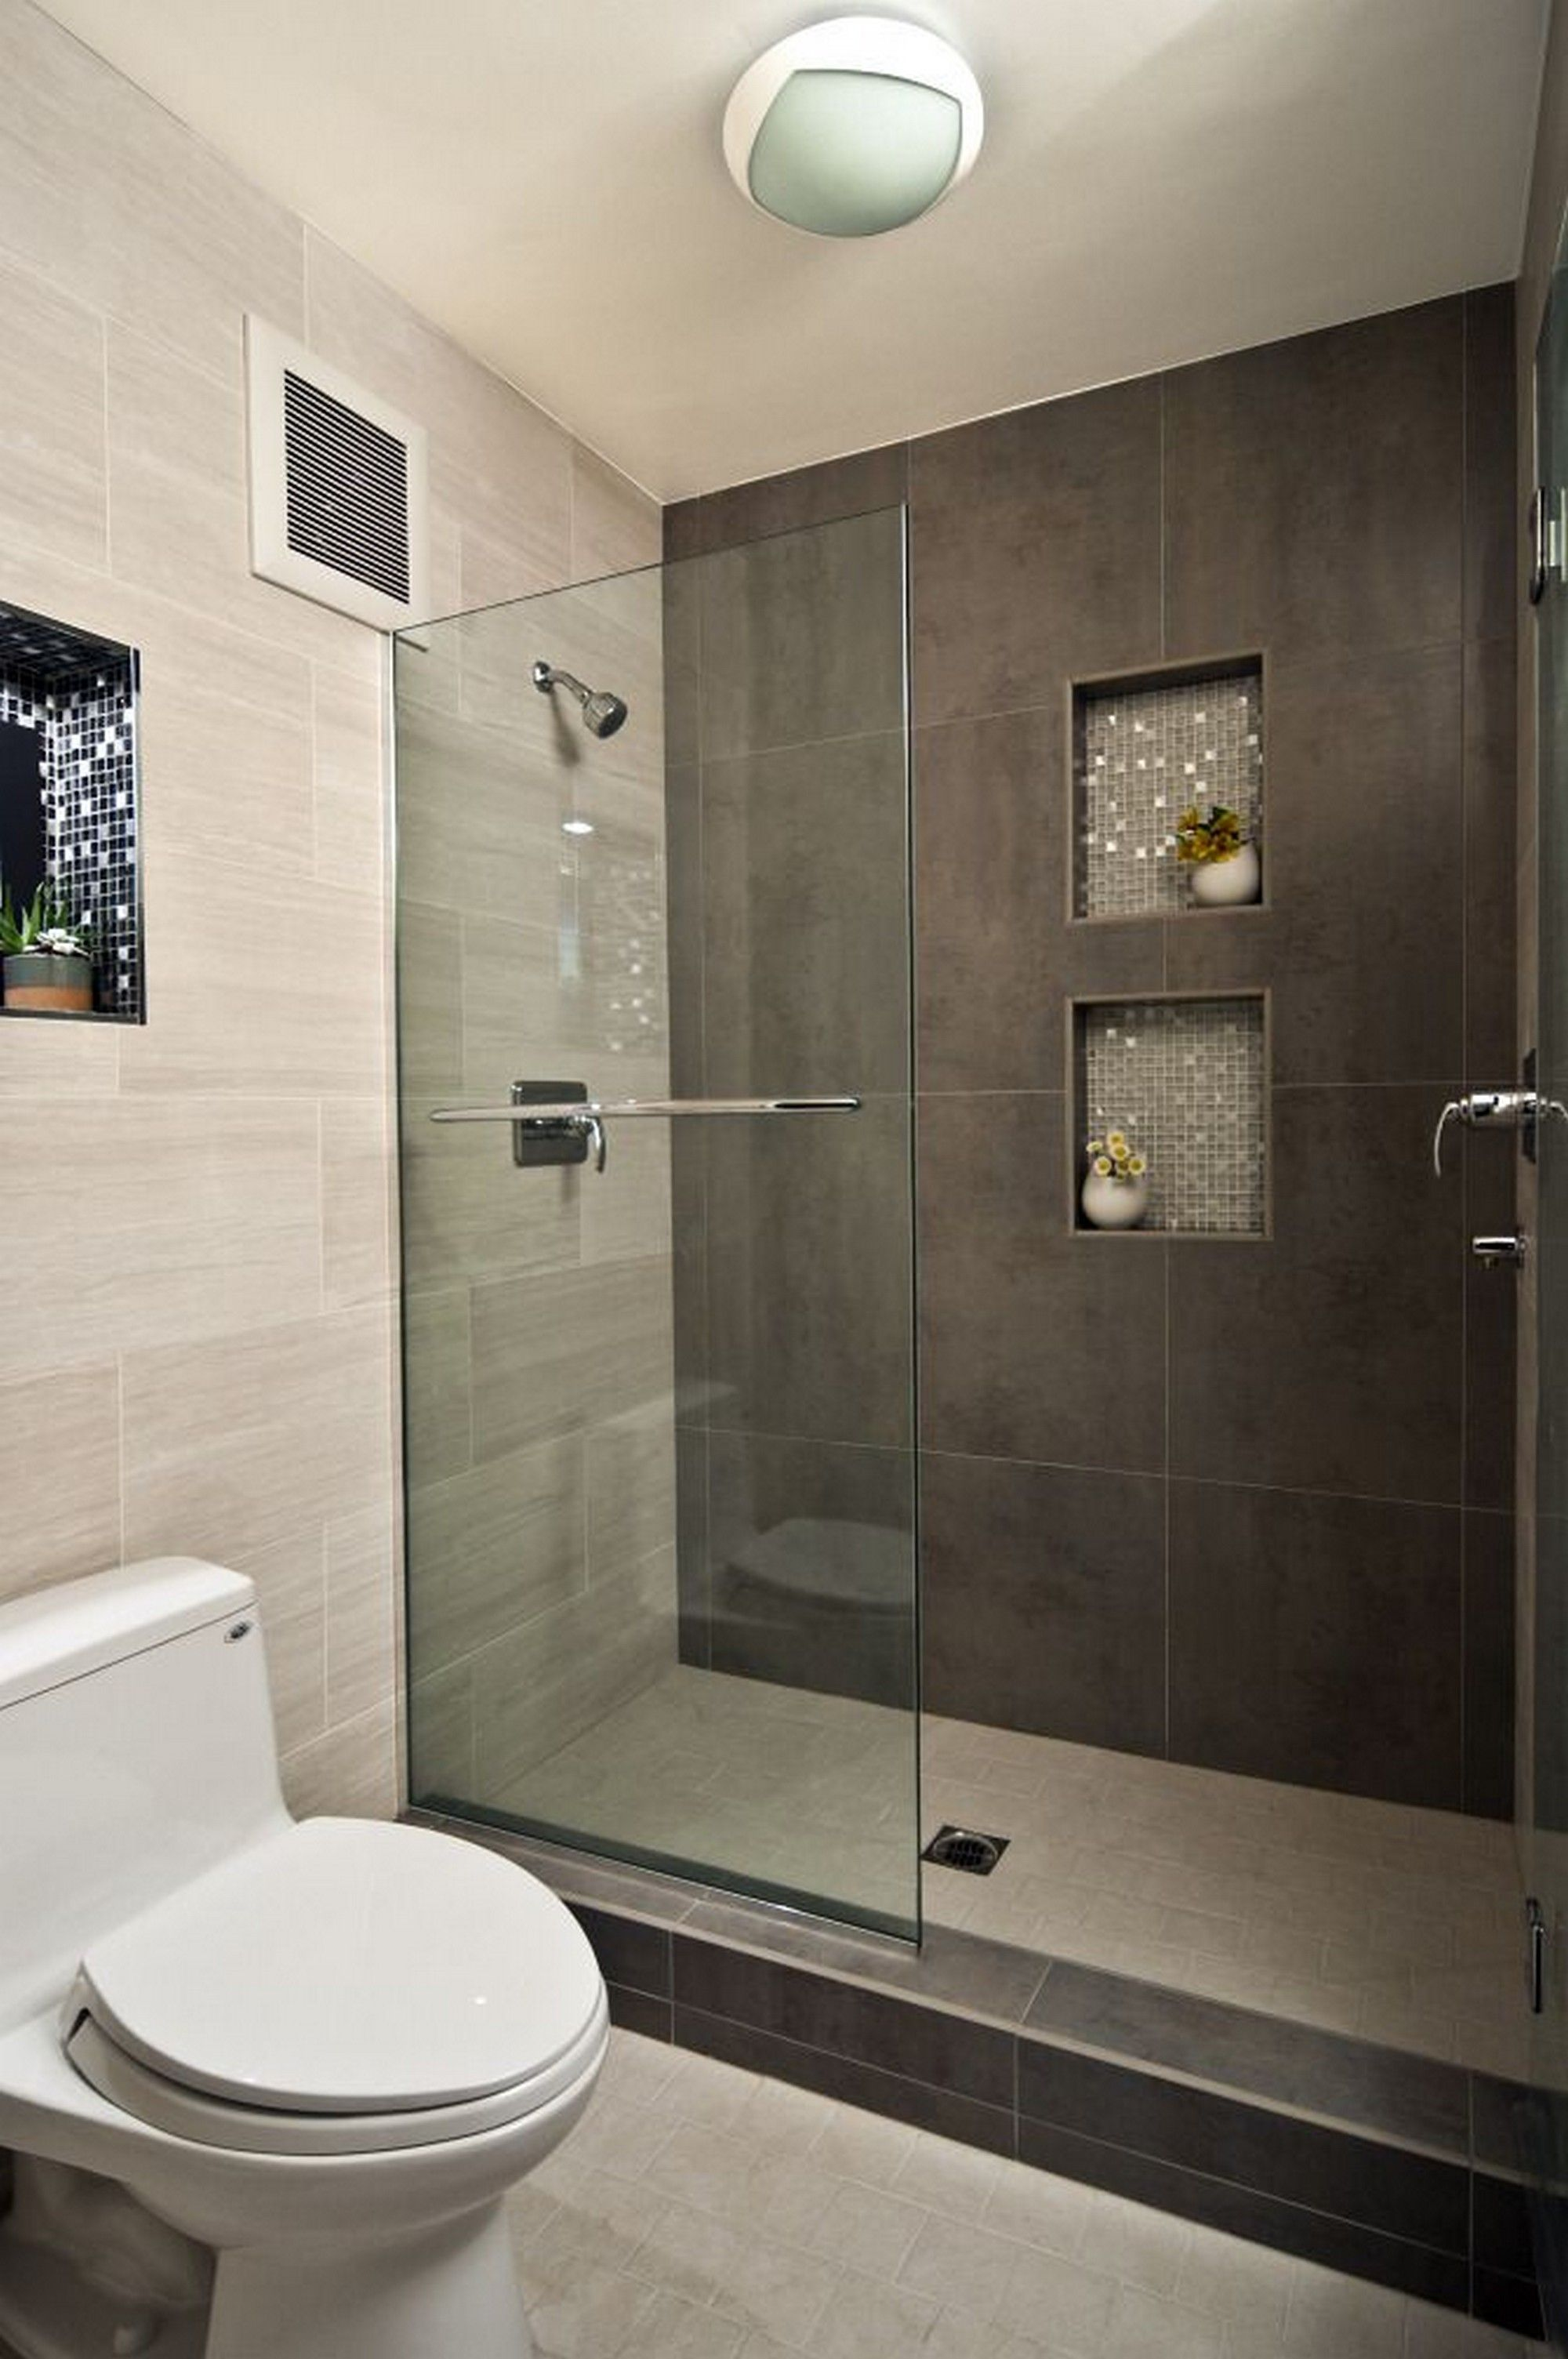 Modern bathroom design ideas with walk in shower small Bathroom decor ideas images